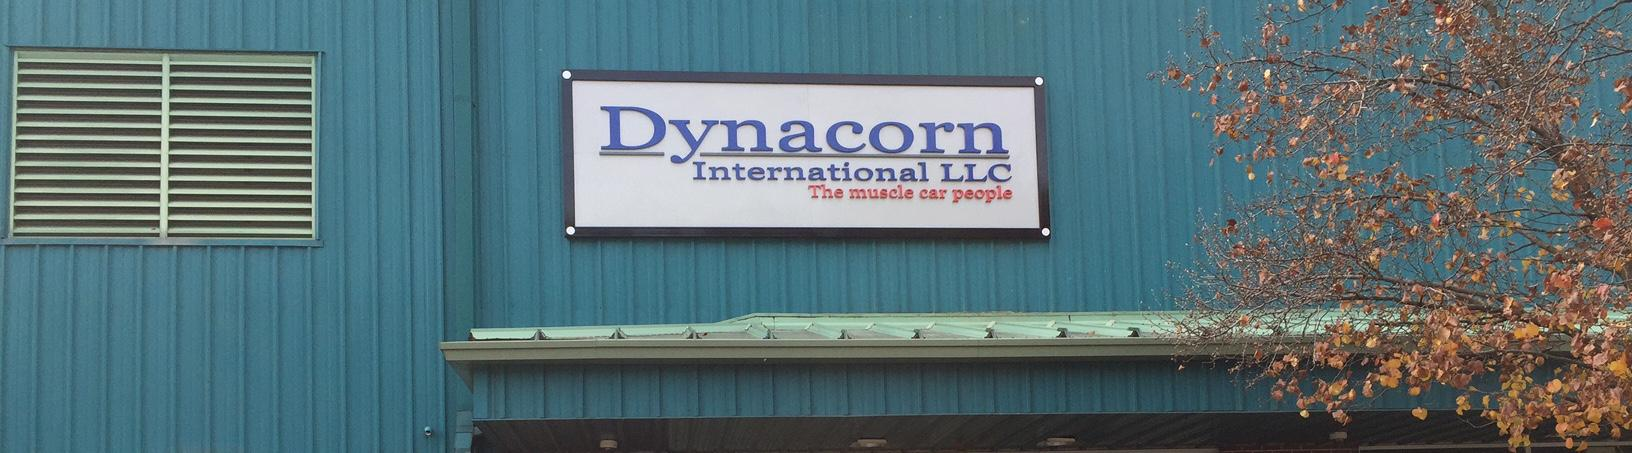 PVC Routed Dimensional Letters with Brushed Aluminum Backer